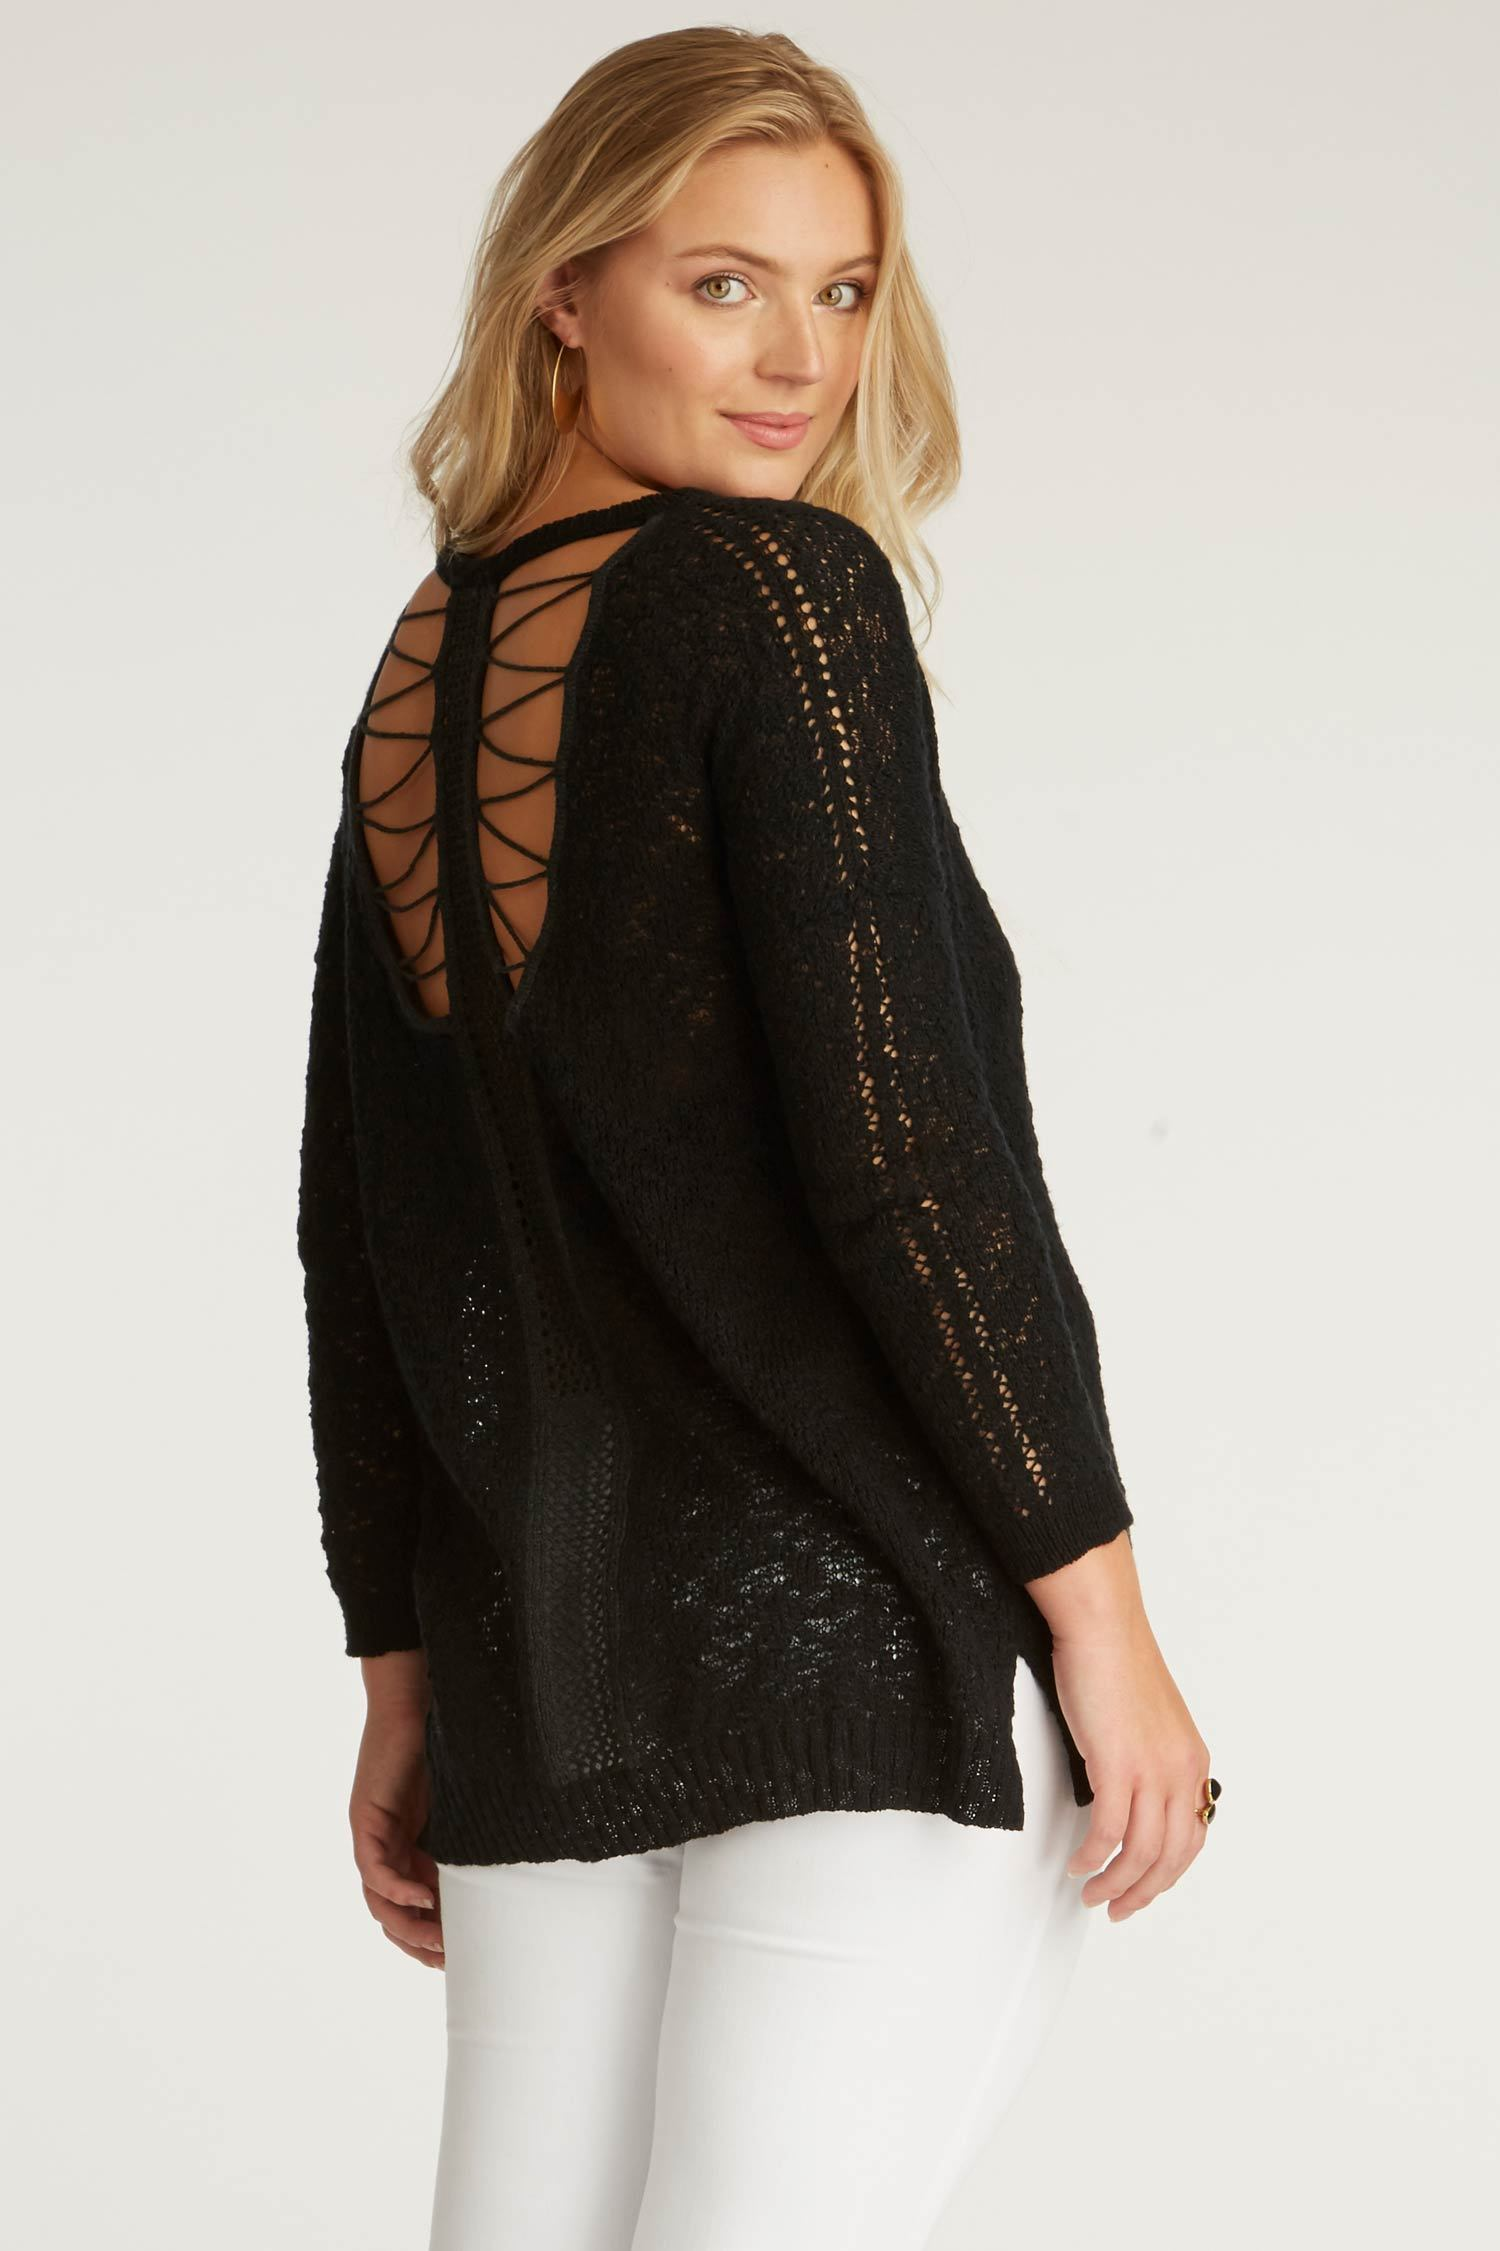 You may also like: - Indigenous Designs Crochet Back Sweater